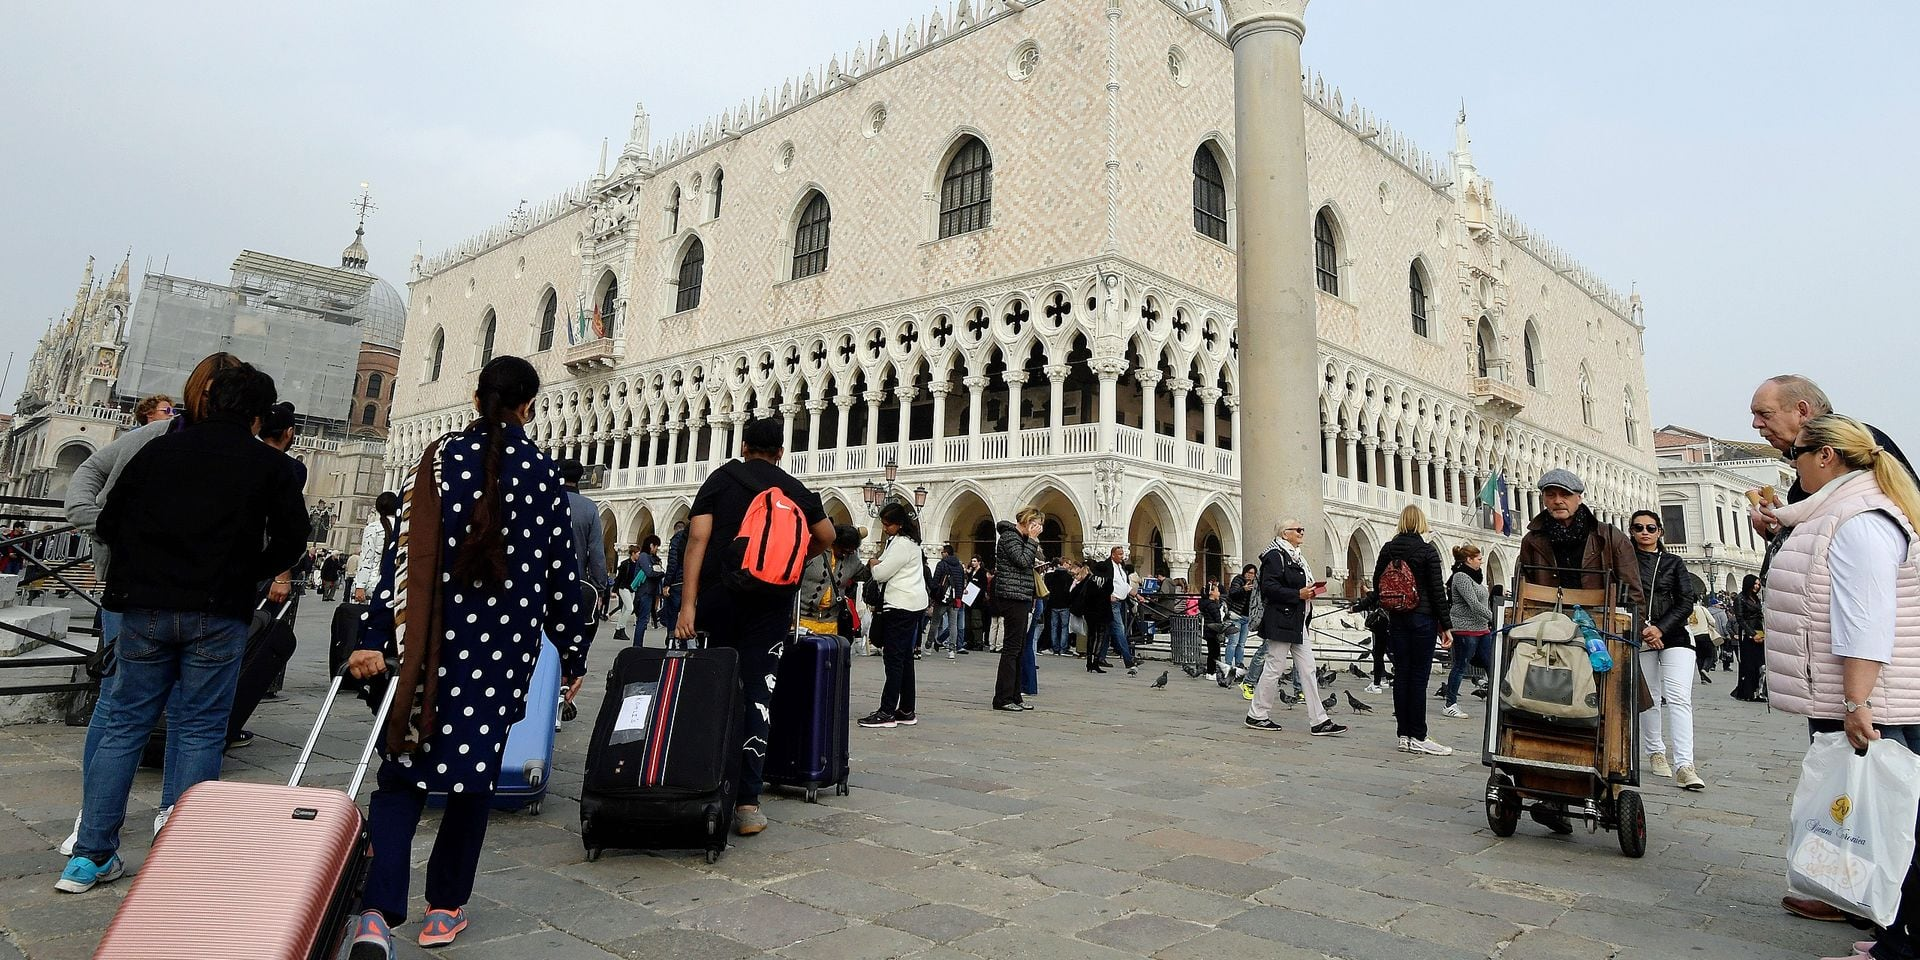 """A picture taken on October 20, 2017 in Venice shows tourists arriving in front of the """"Palazzo Ducale"""" at St Mark's square. - A referendum will be held on October 22, 2017 in the Italian regions of Lombardy and Veneto, both ruled by rightwing party Northern League, to ask for more fiscal autonomy and more powers to decide how to allocate financial resources. (Photo by MIGUEL MEDINA / AFP)"""